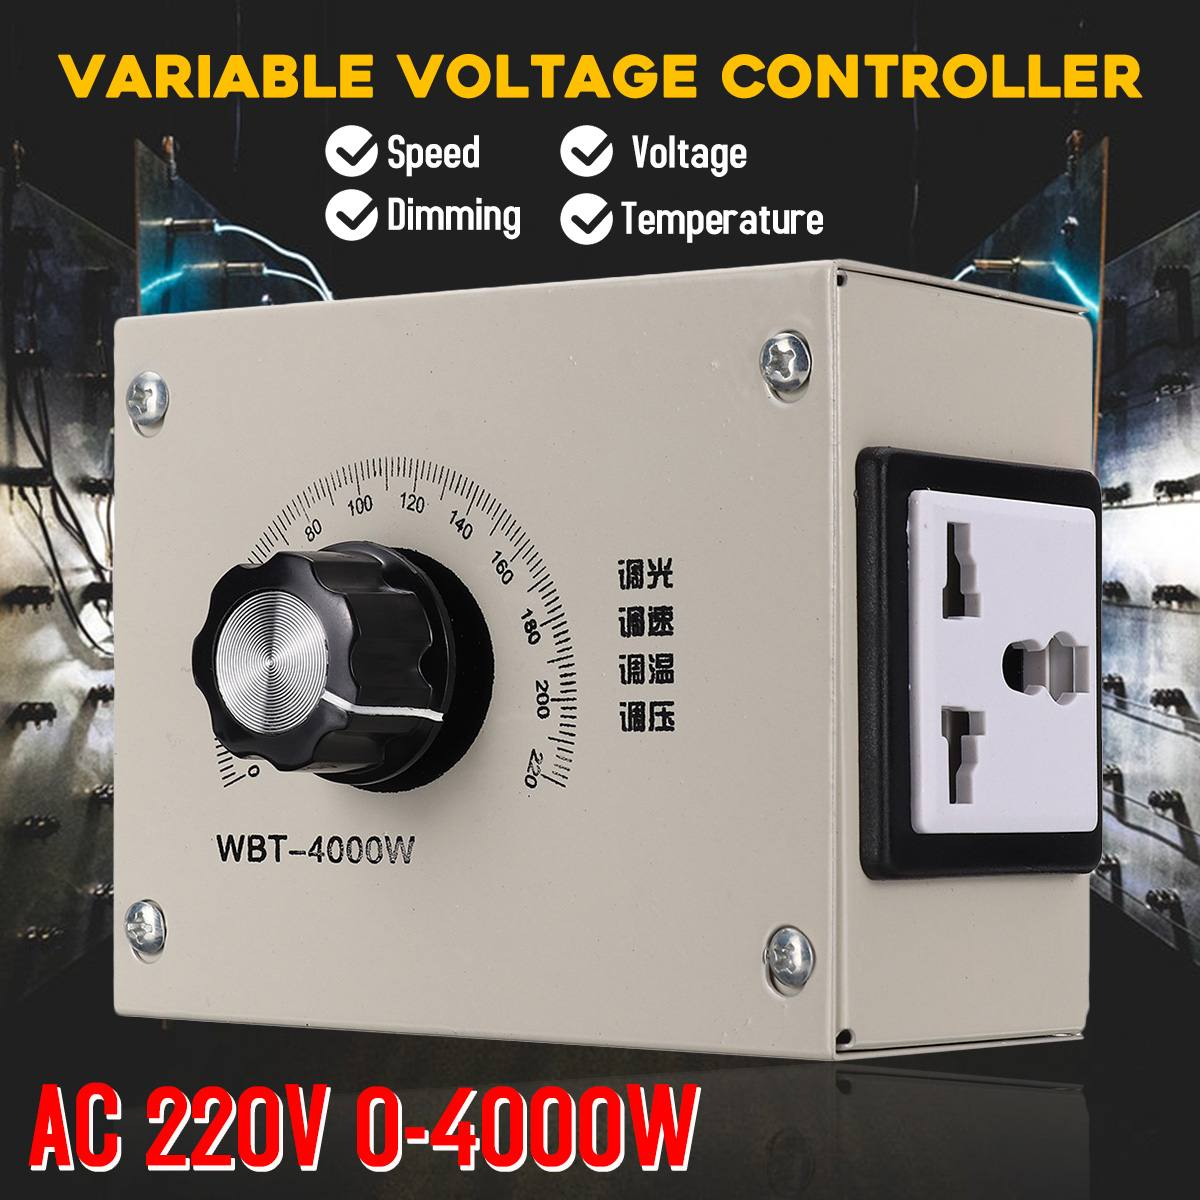 AC 220V 4000W For Thermostat Light Fan Motor Dimmer Adjustable Voltage Speed Temperature Dimmer Controller Brightness Fan SpeedAC 220V 4000W For Thermostat Light Fan Motor Dimmer Adjustable Voltage Speed Temperature Dimmer Controller Brightness Fan Speed